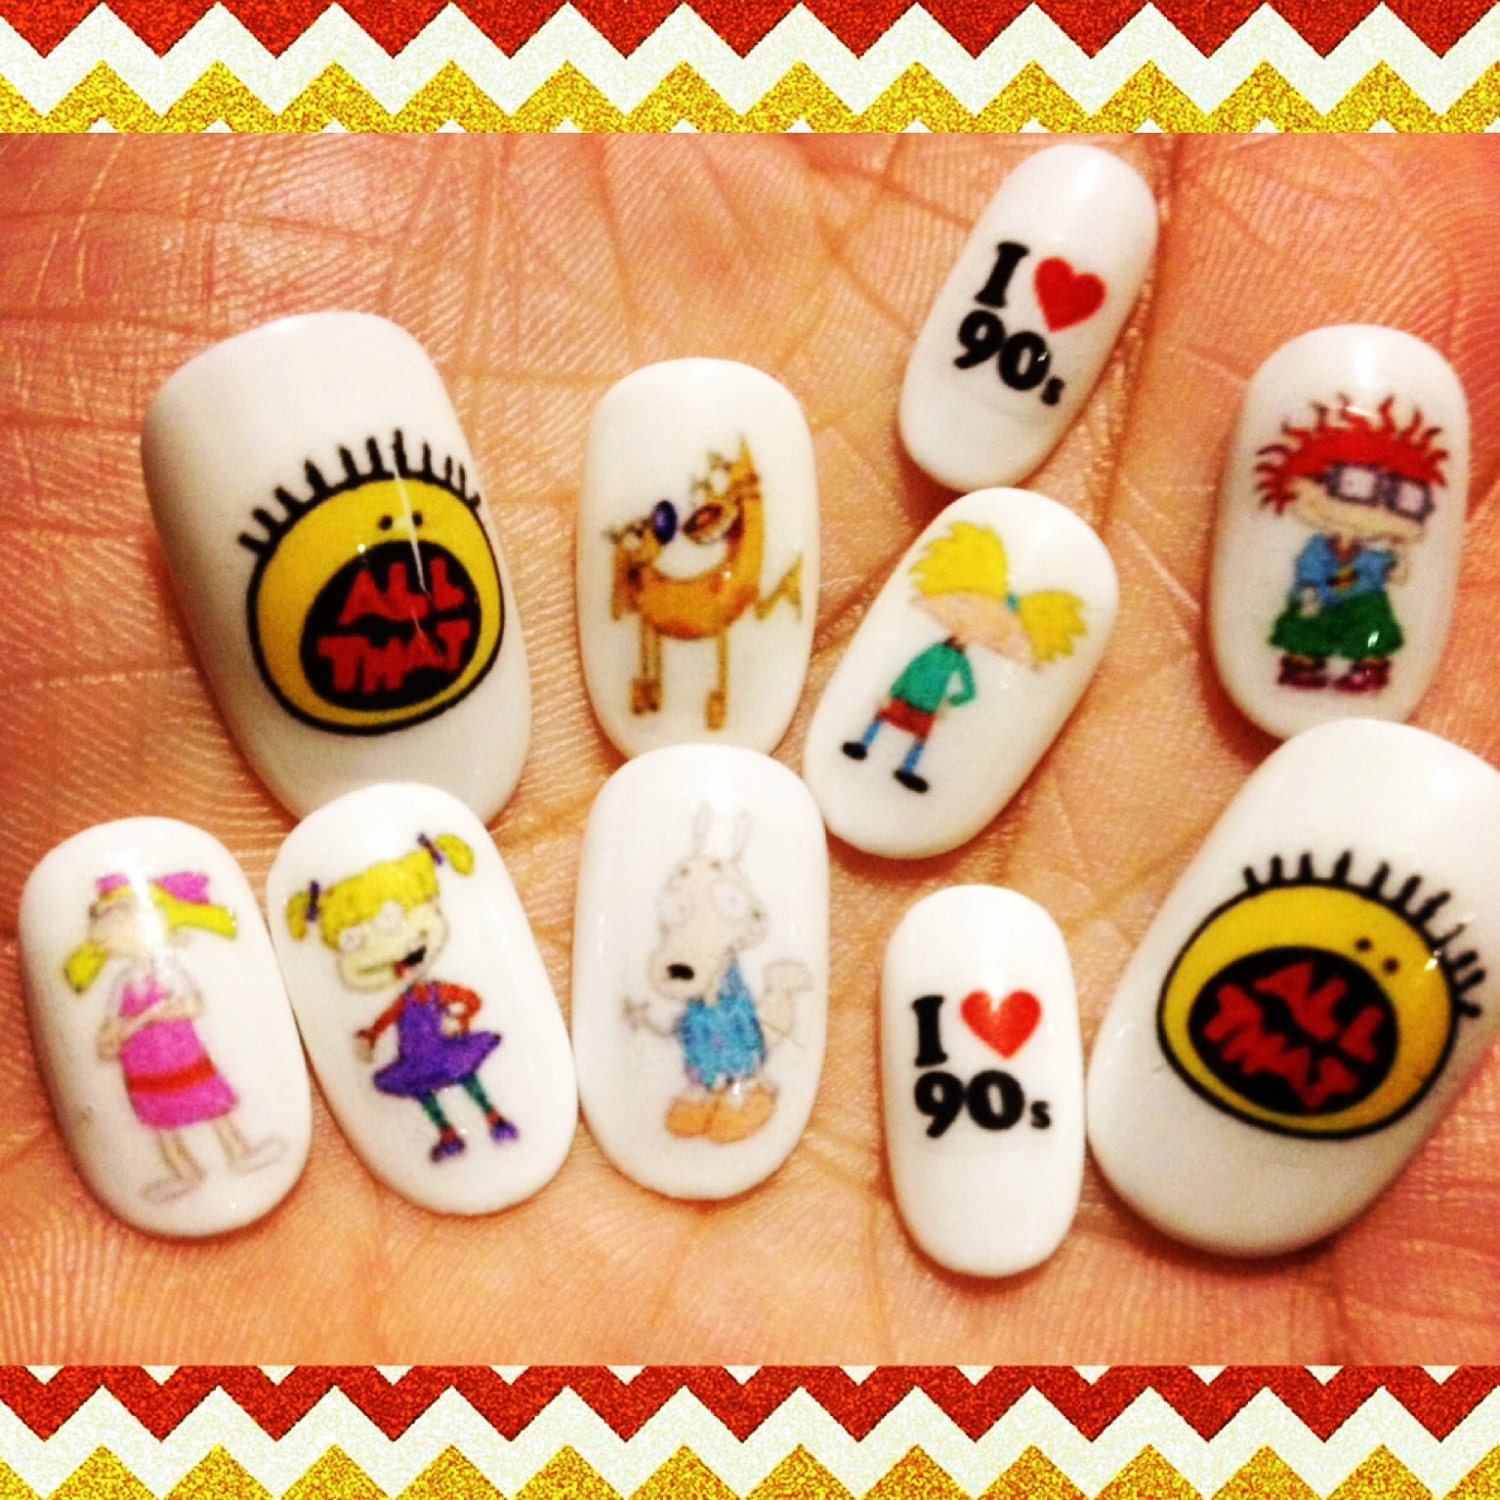 Rugrats Dog Life: 90s Nick Nail Decals/ Nail Wraps/ Nail Art/ Nickelodeon TV/